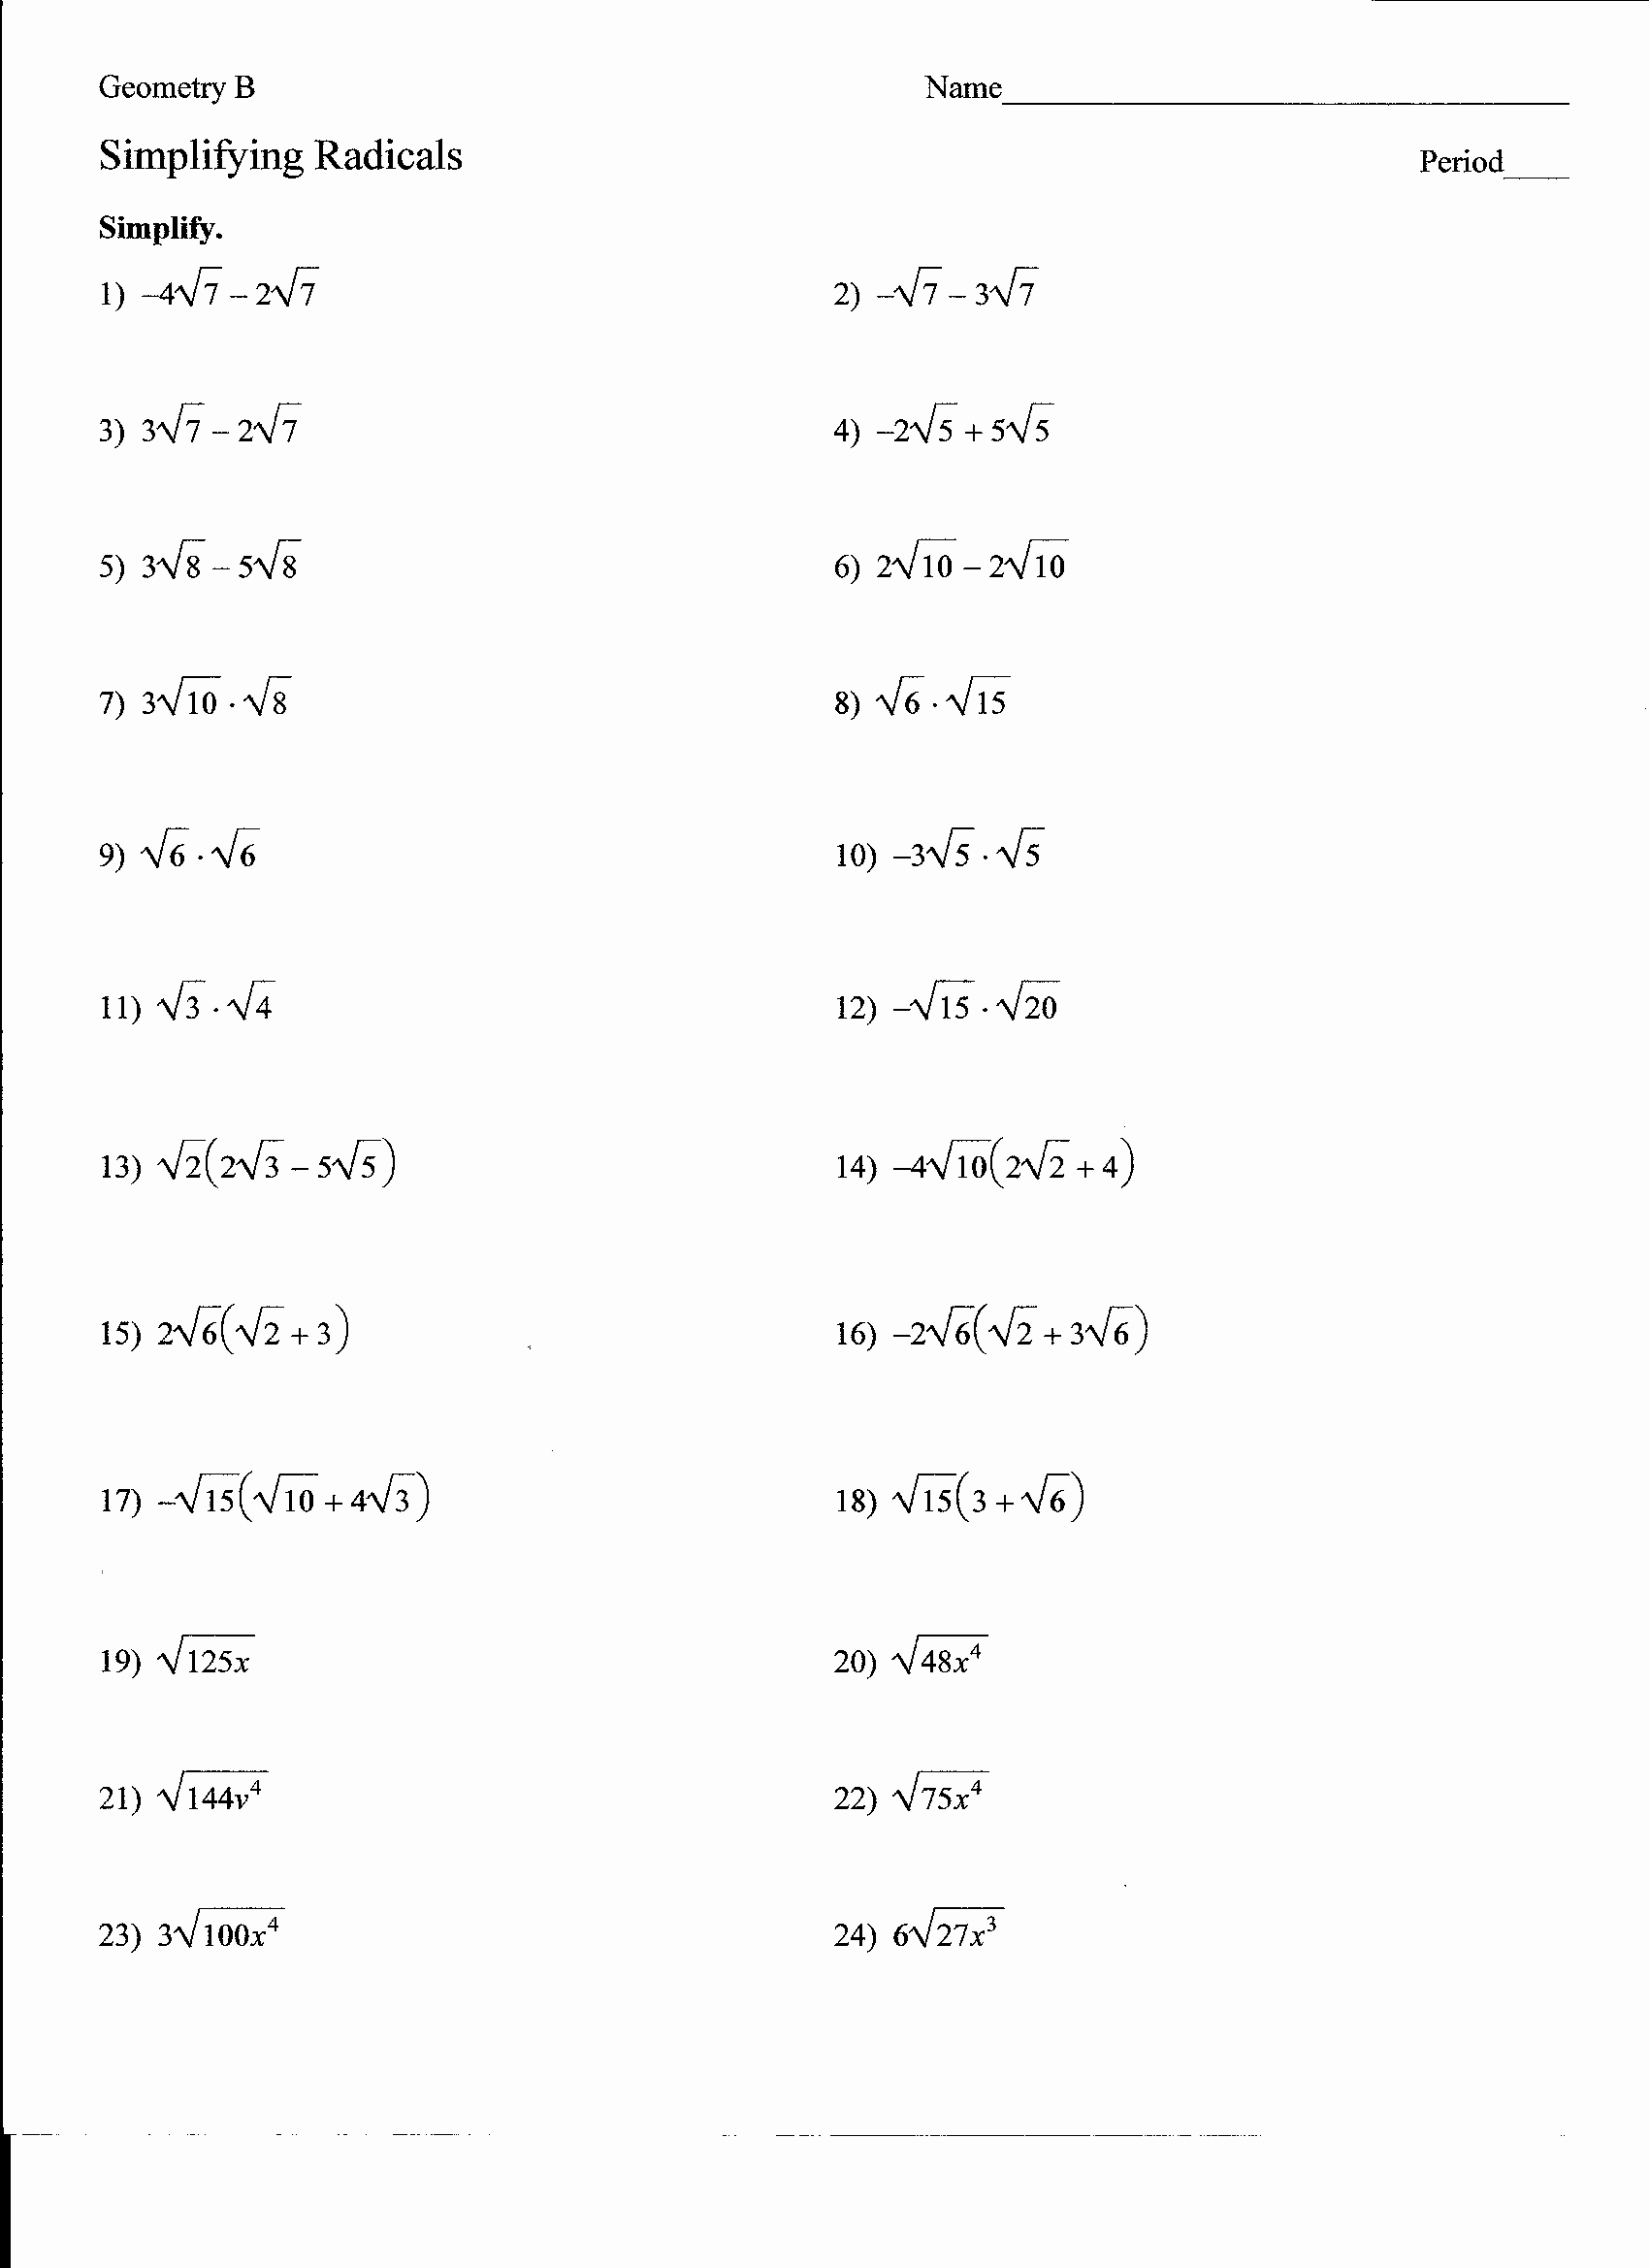 Simplifying Radical Expressions Worksheet Answers Luxury 19 Best Of Multiplying and Dividing Radicals